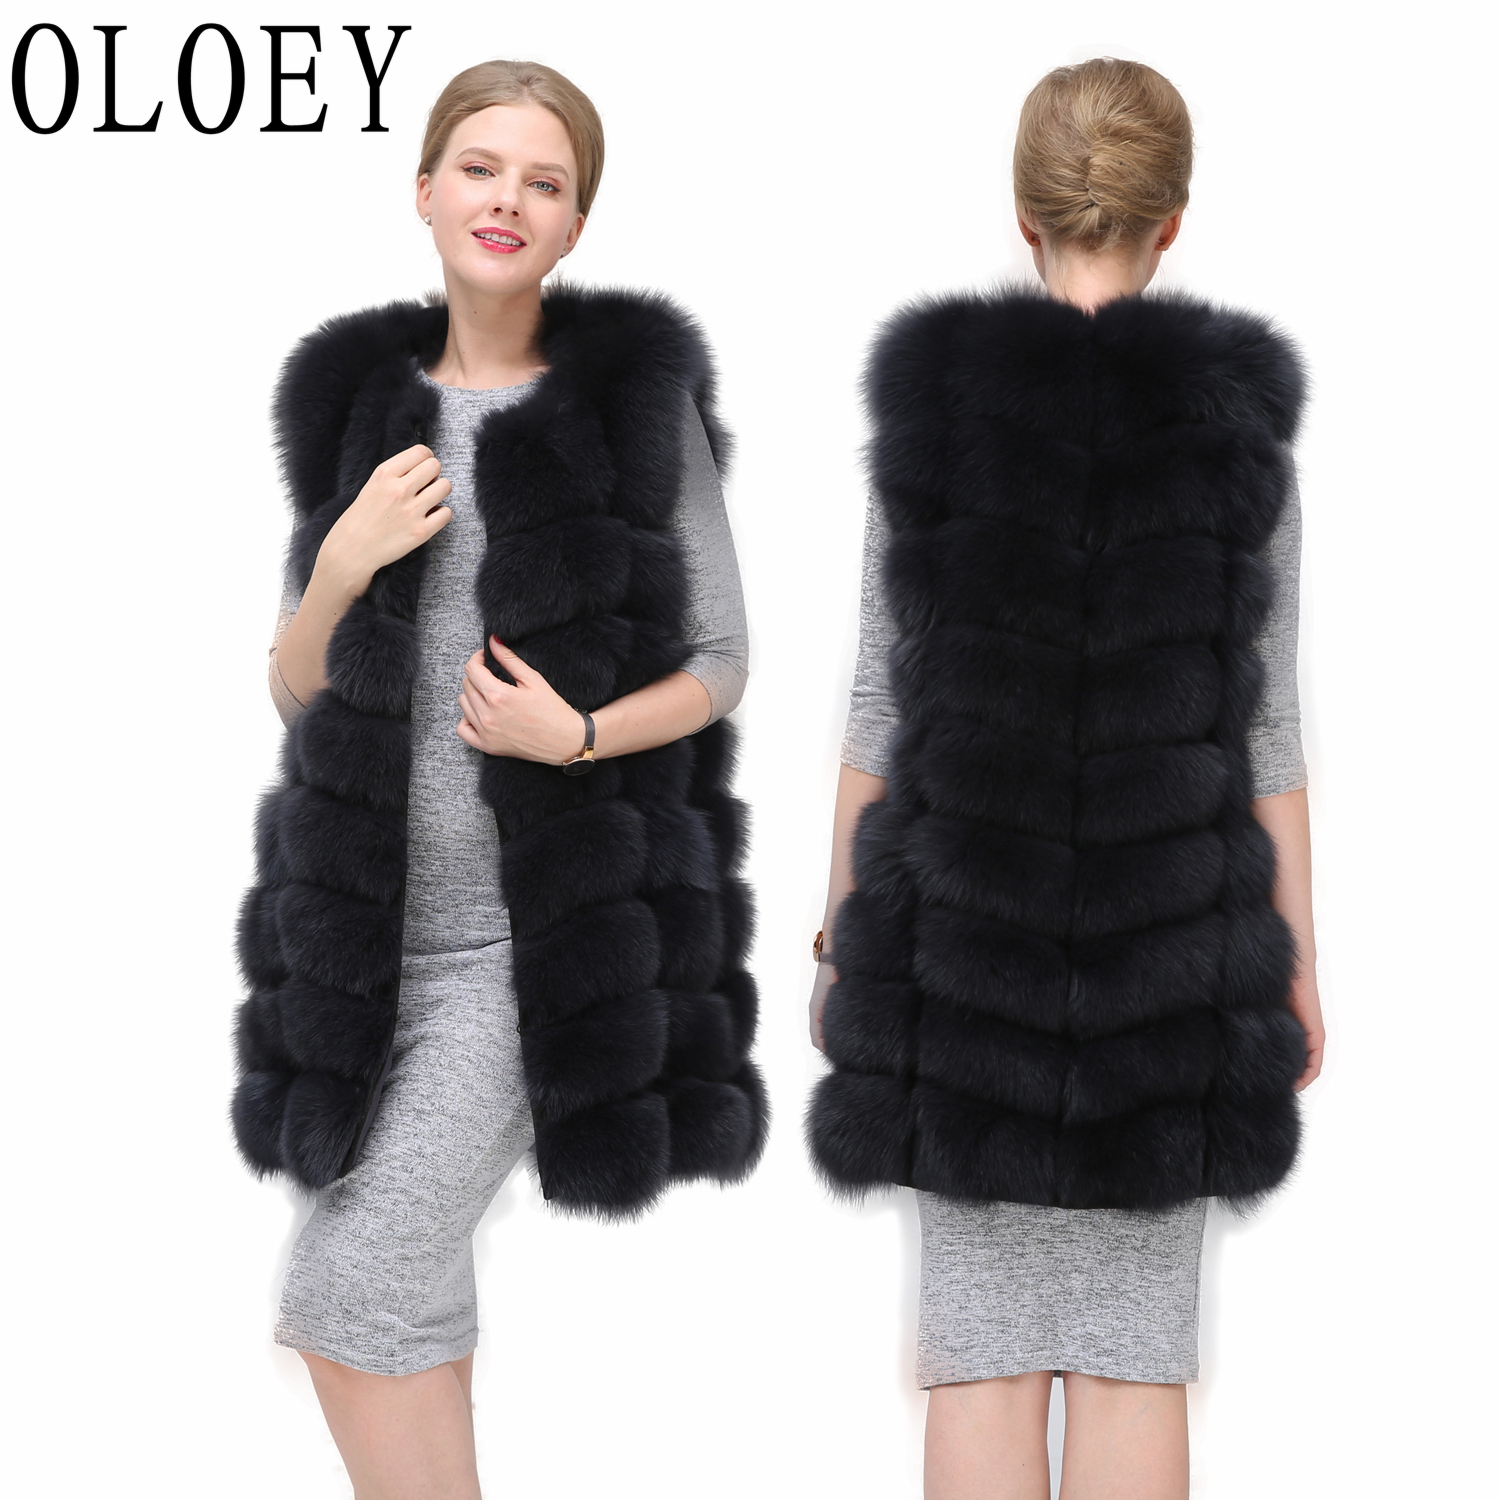 2019 New  Real Fox Fur Vest  Jacket  Natural Fox Fur Coat High Quality Winter Fashion Warm Sleeveless Jacket For Women